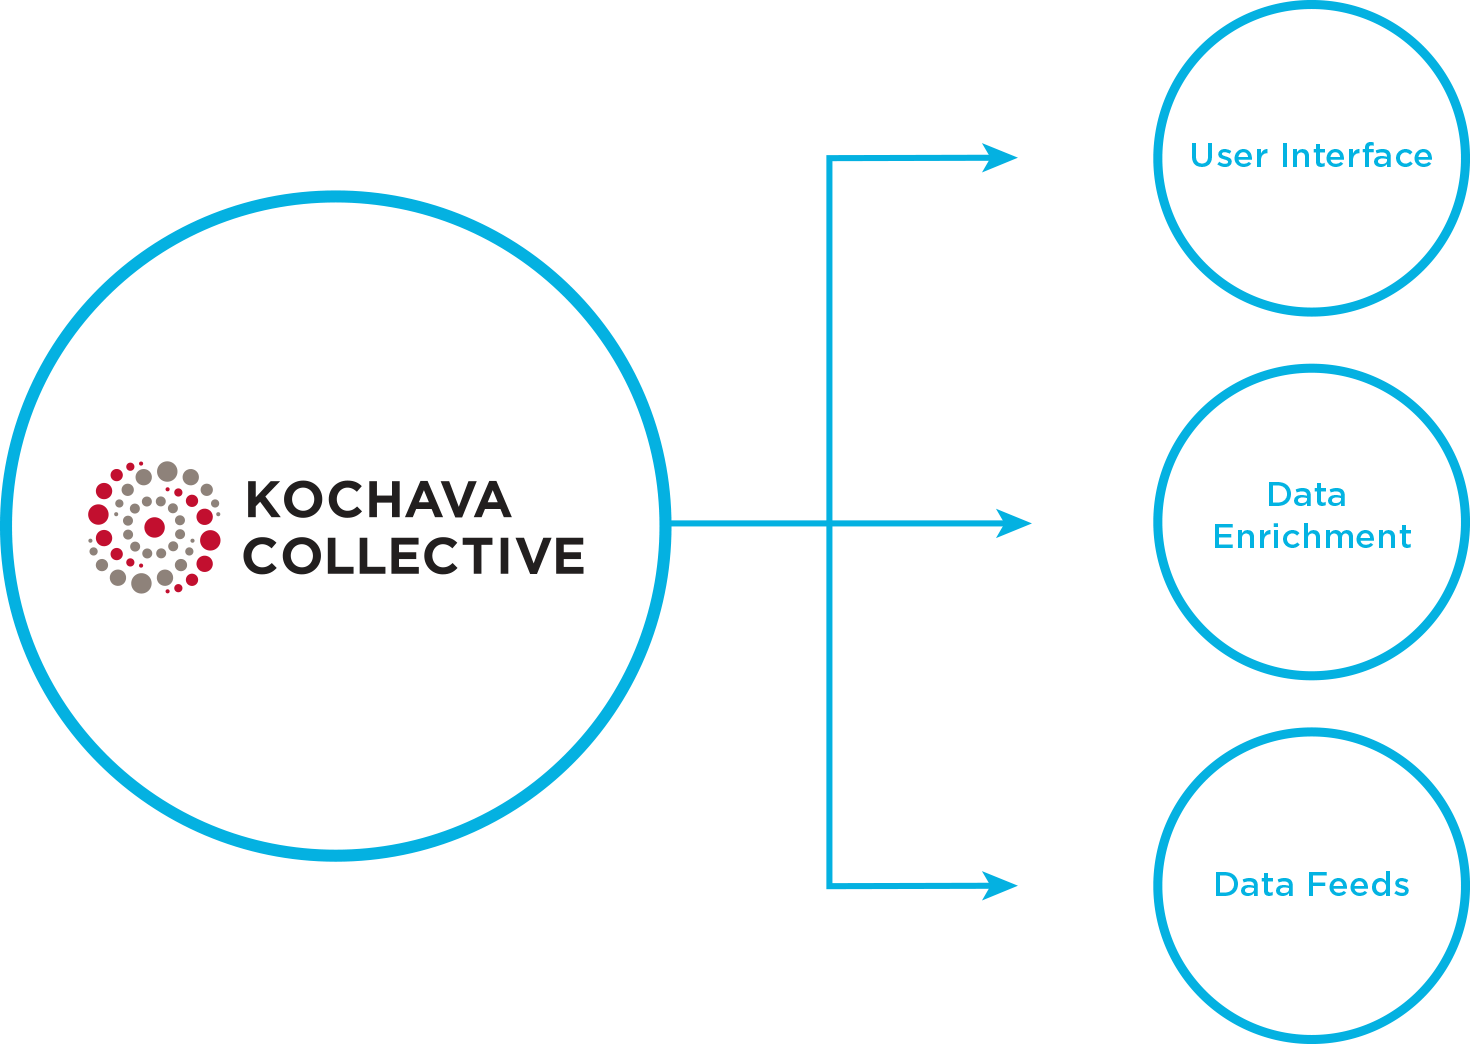 Kochava Collective composed of user interface, data enrichment, and data feeds